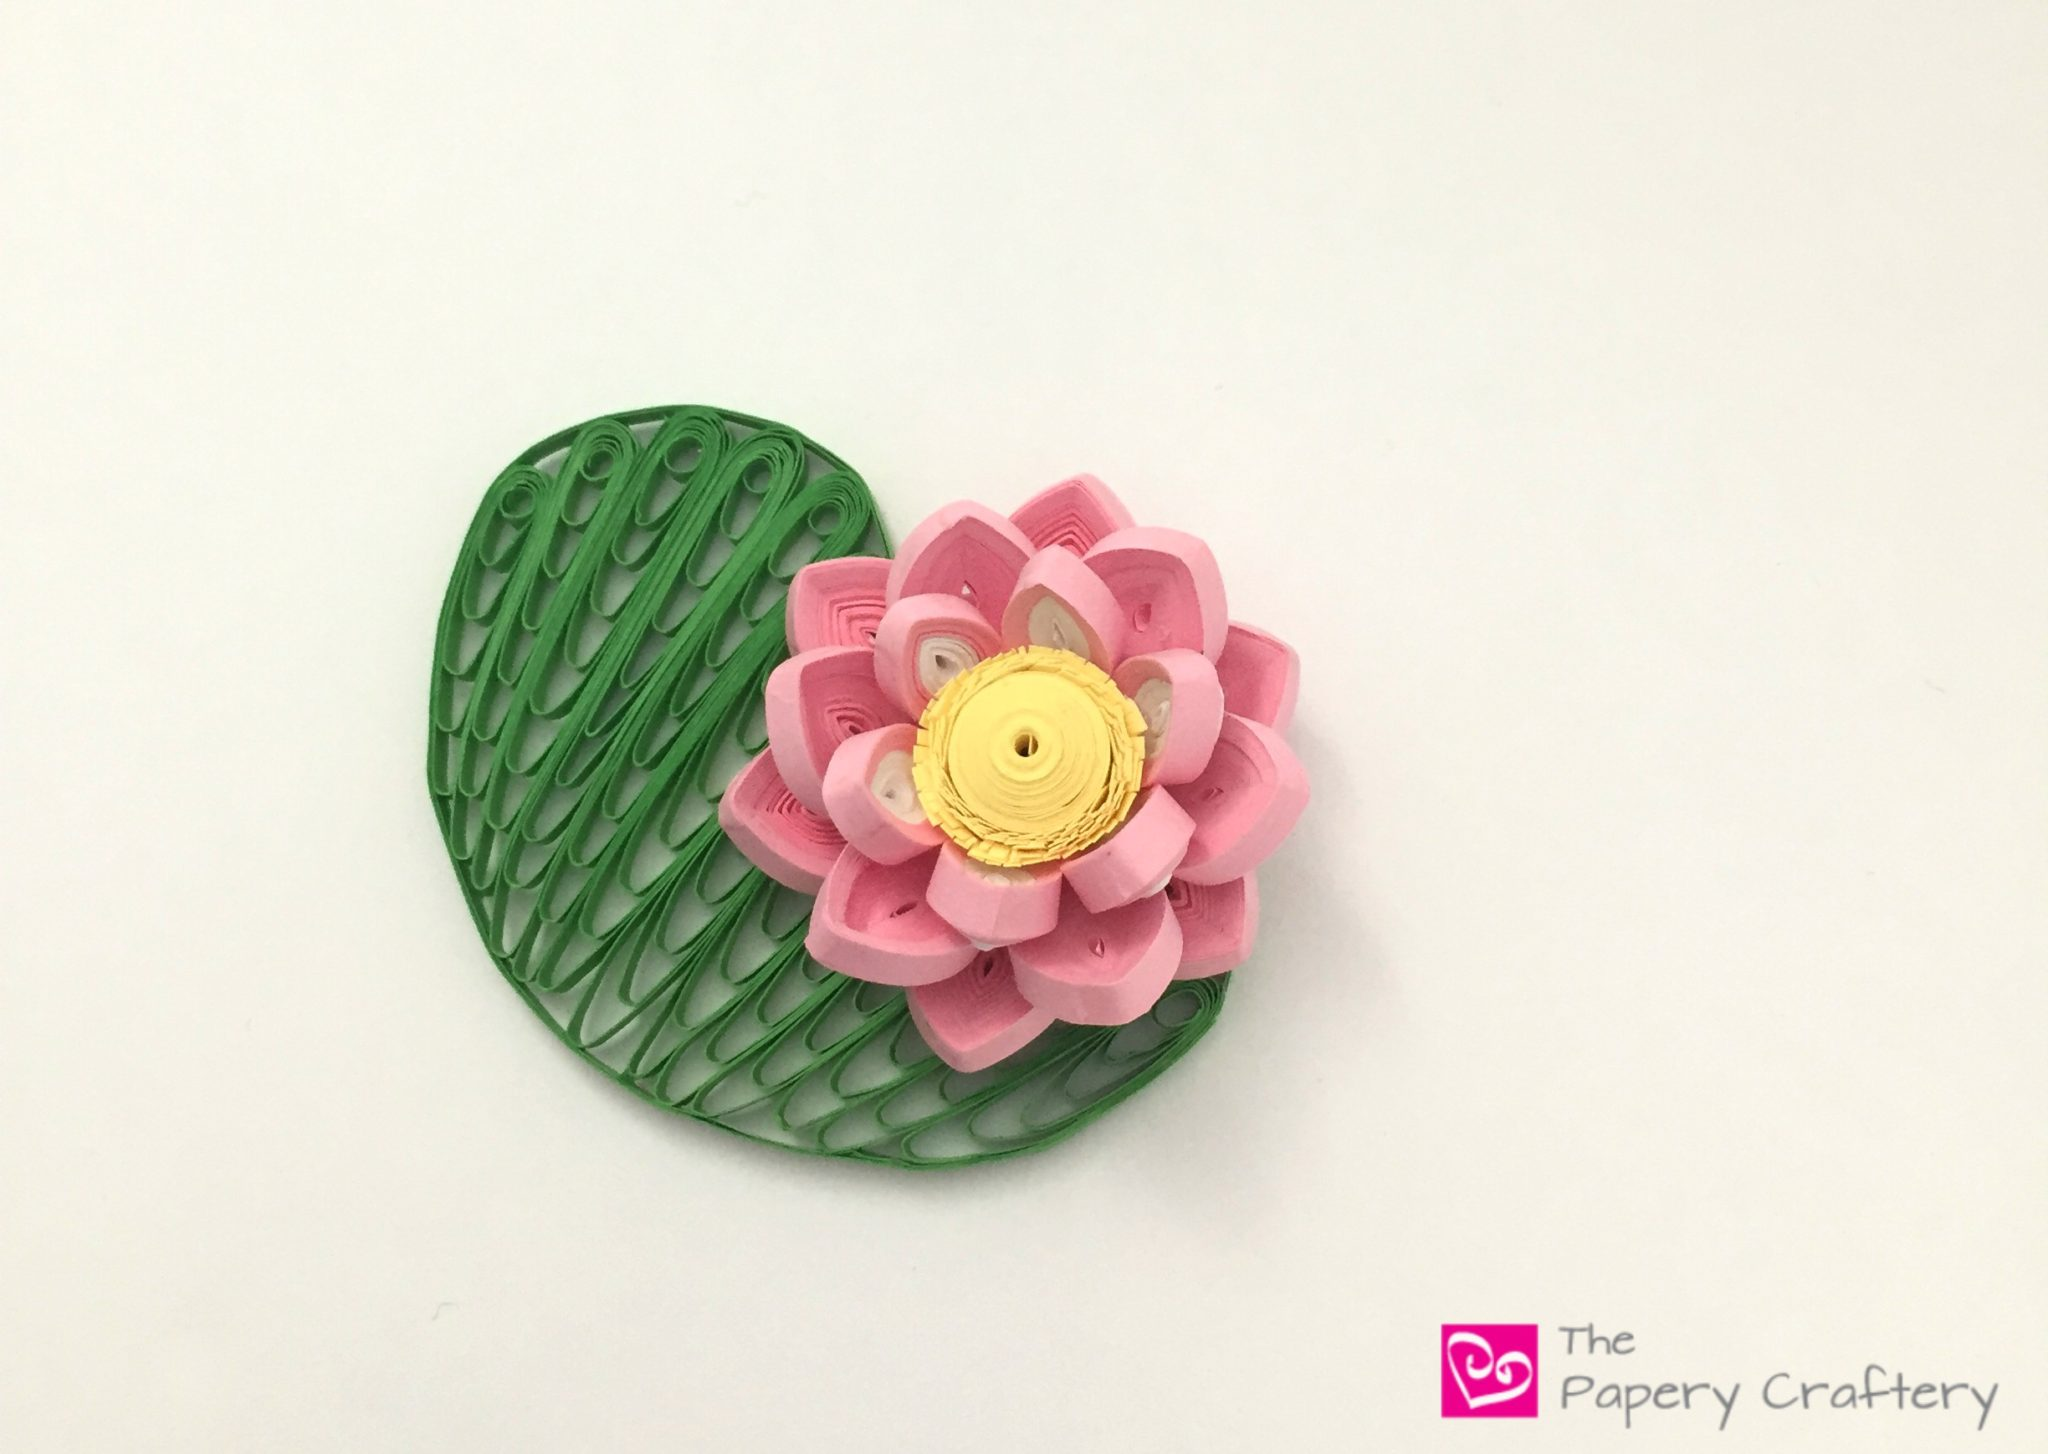 Quilling paper water lilies the papery craftery quilling paper water lilies brush up on your 3d quilling and quilling comb techniques with izmirmasajfo Gallery